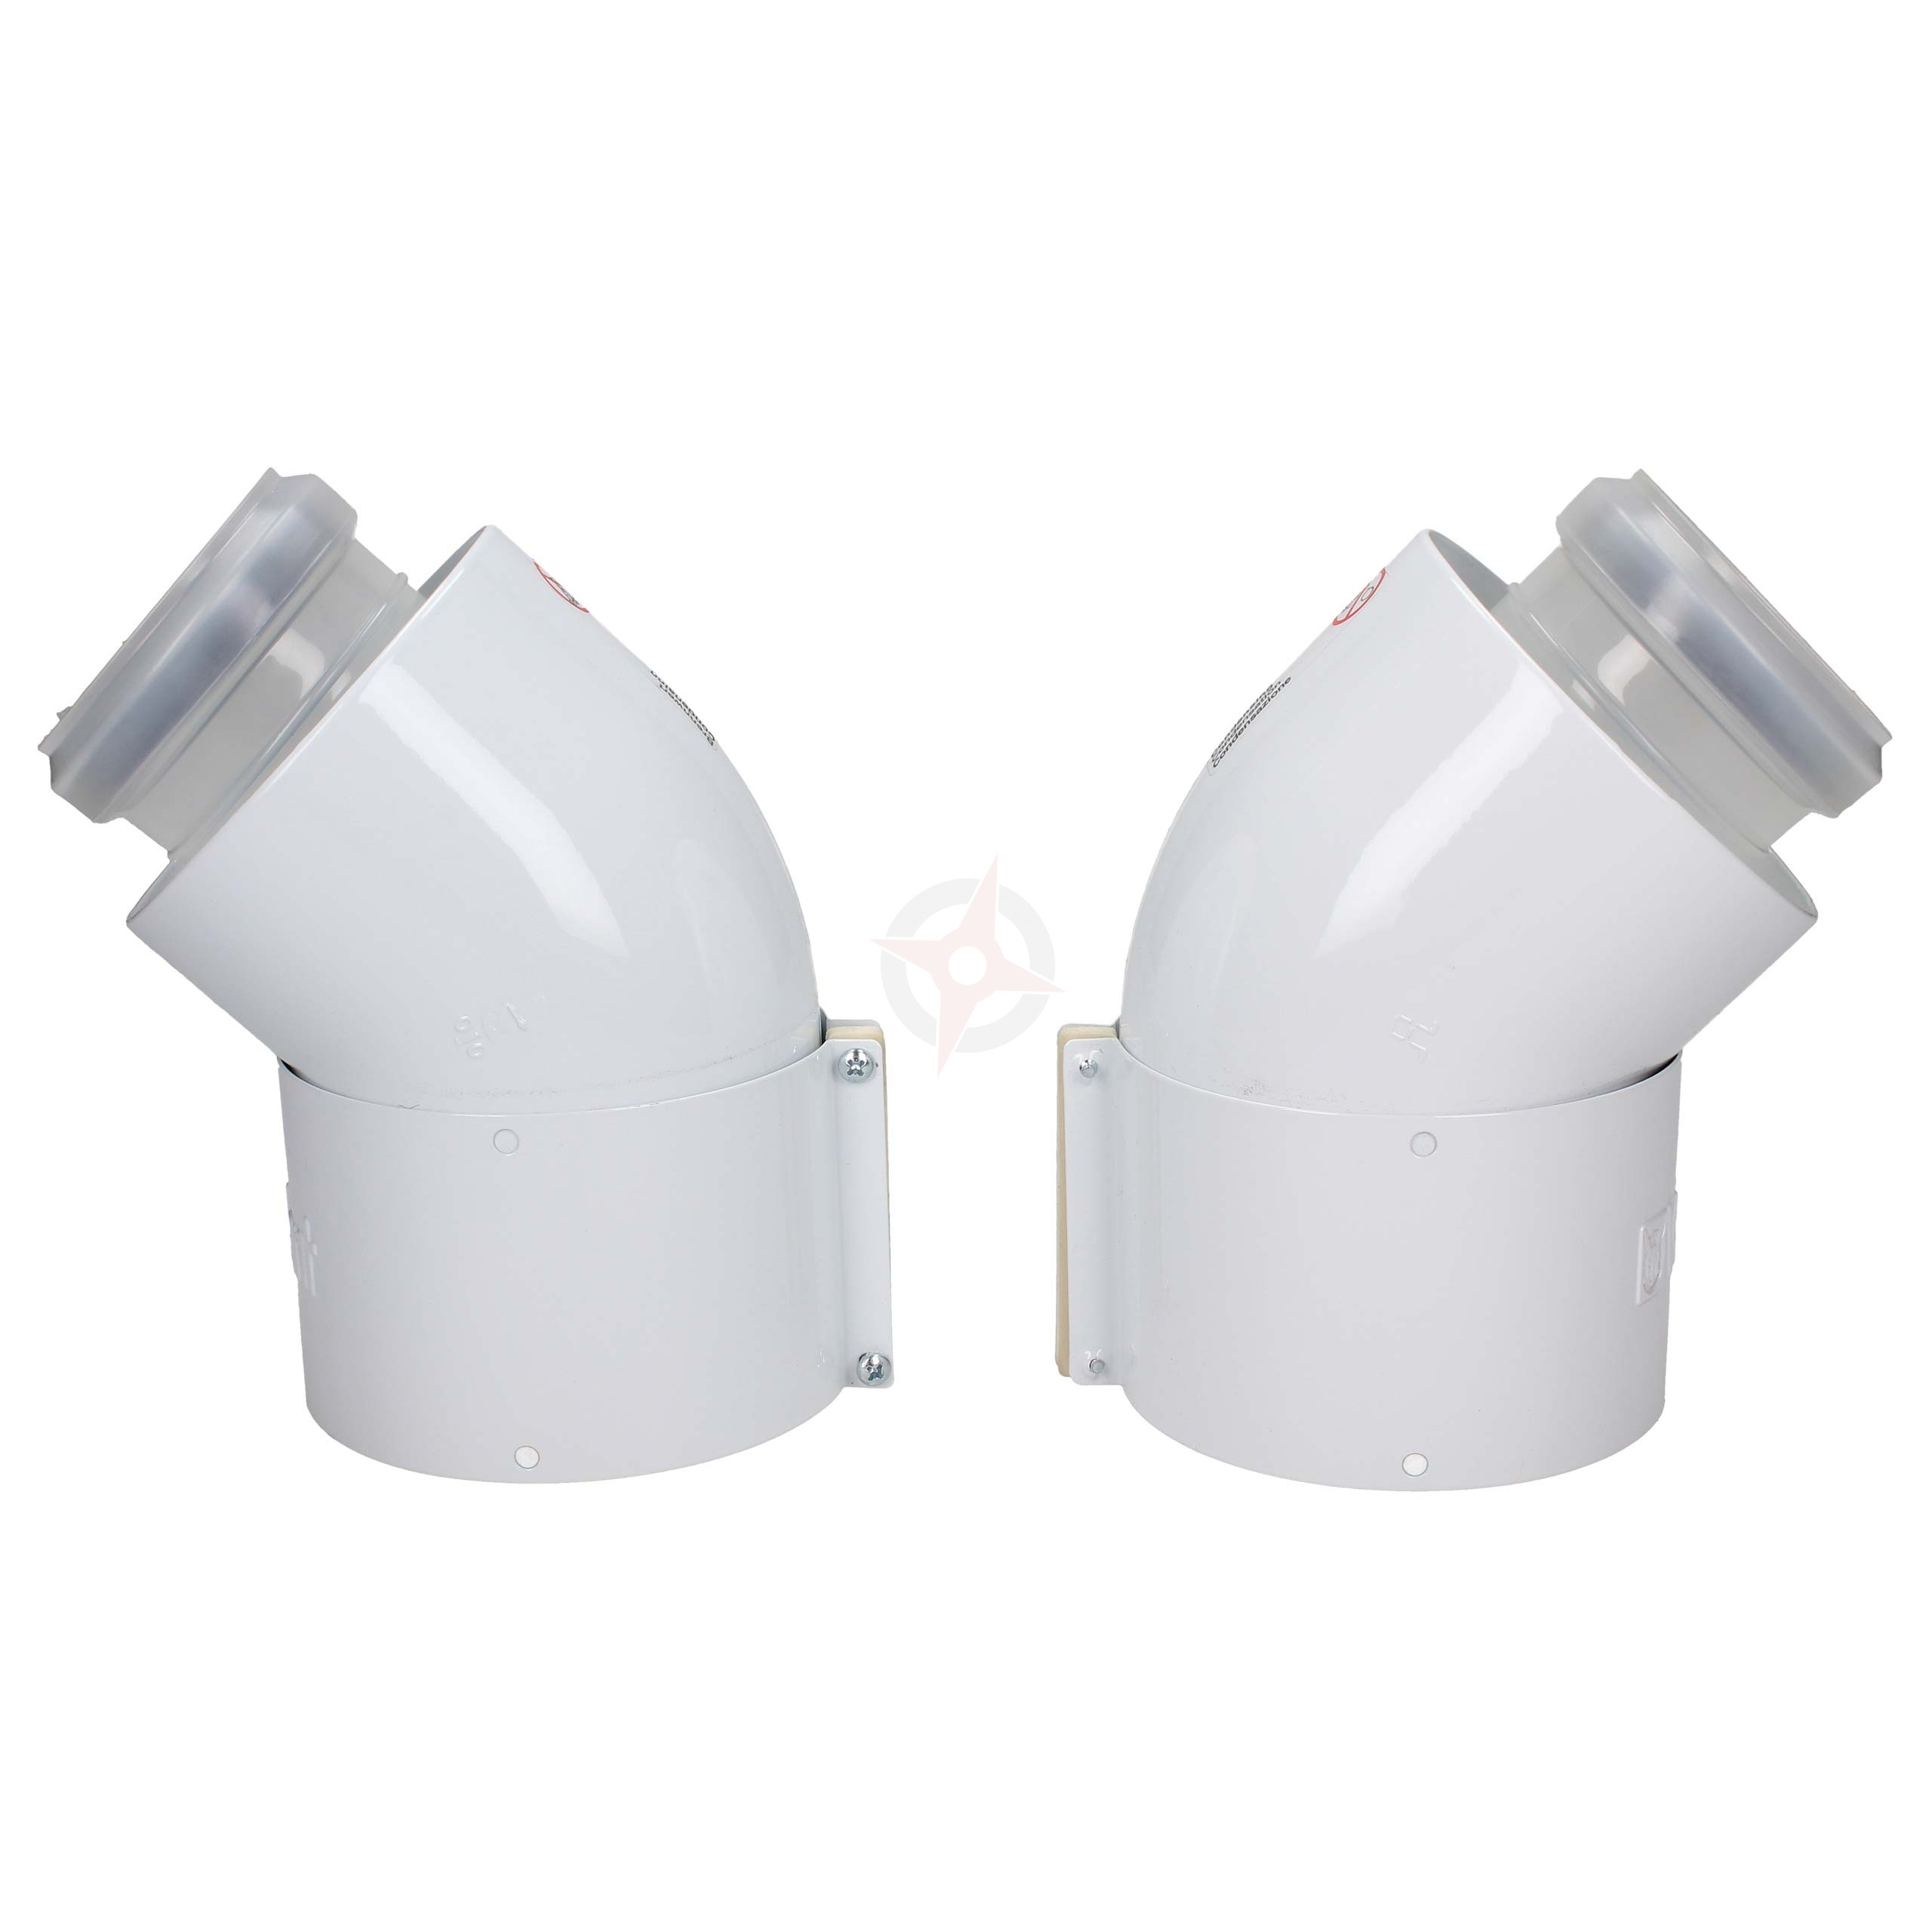 Vaillant 45 Degree Flue Bends (Pack Of 2)